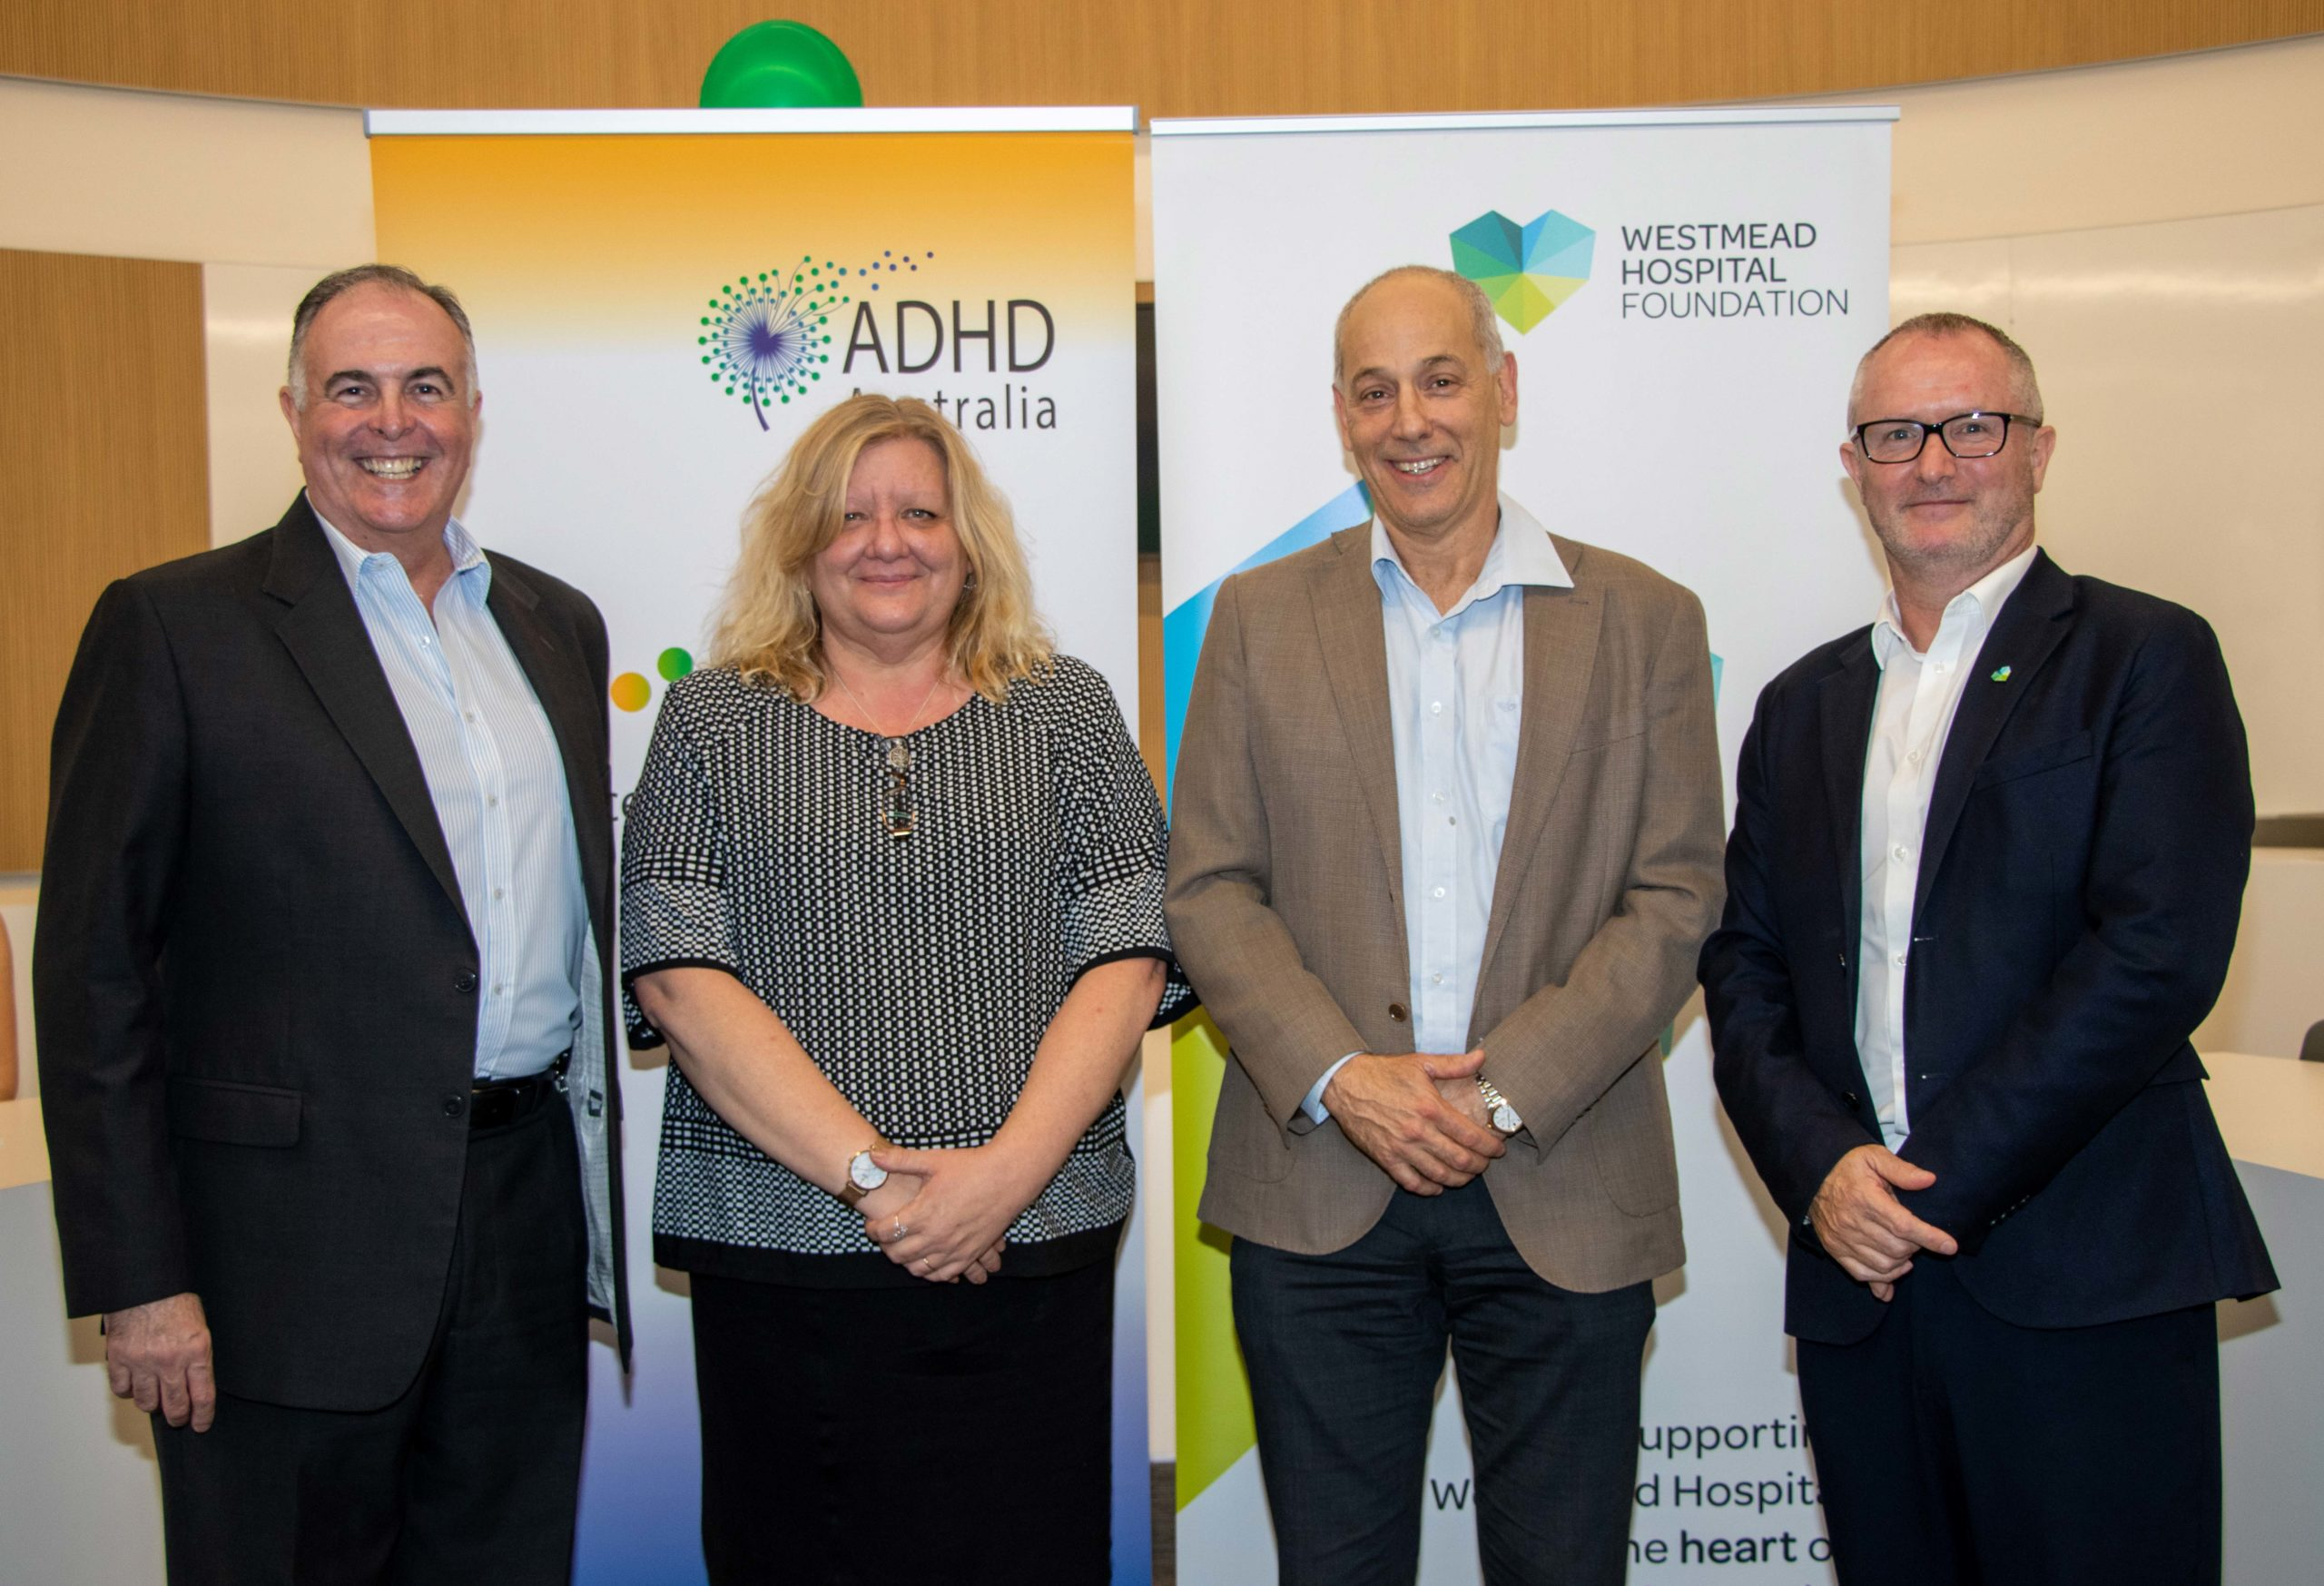 Westmead Hospital provides ongoing support for people with ADHD and their families through the launch of a new website